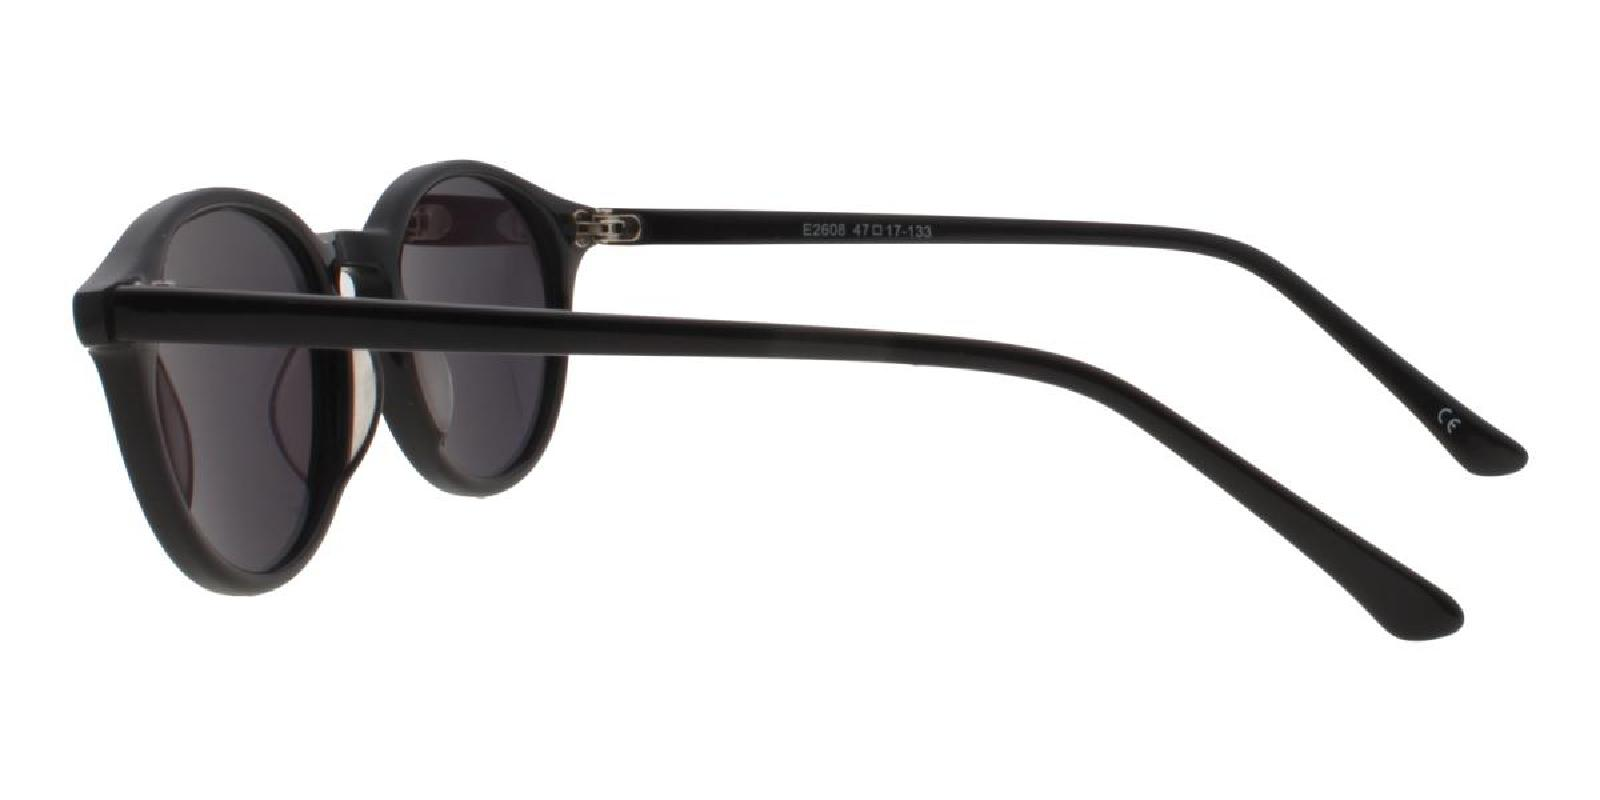 Grailm-Black-Round-Acetate-Sunglasses-detail